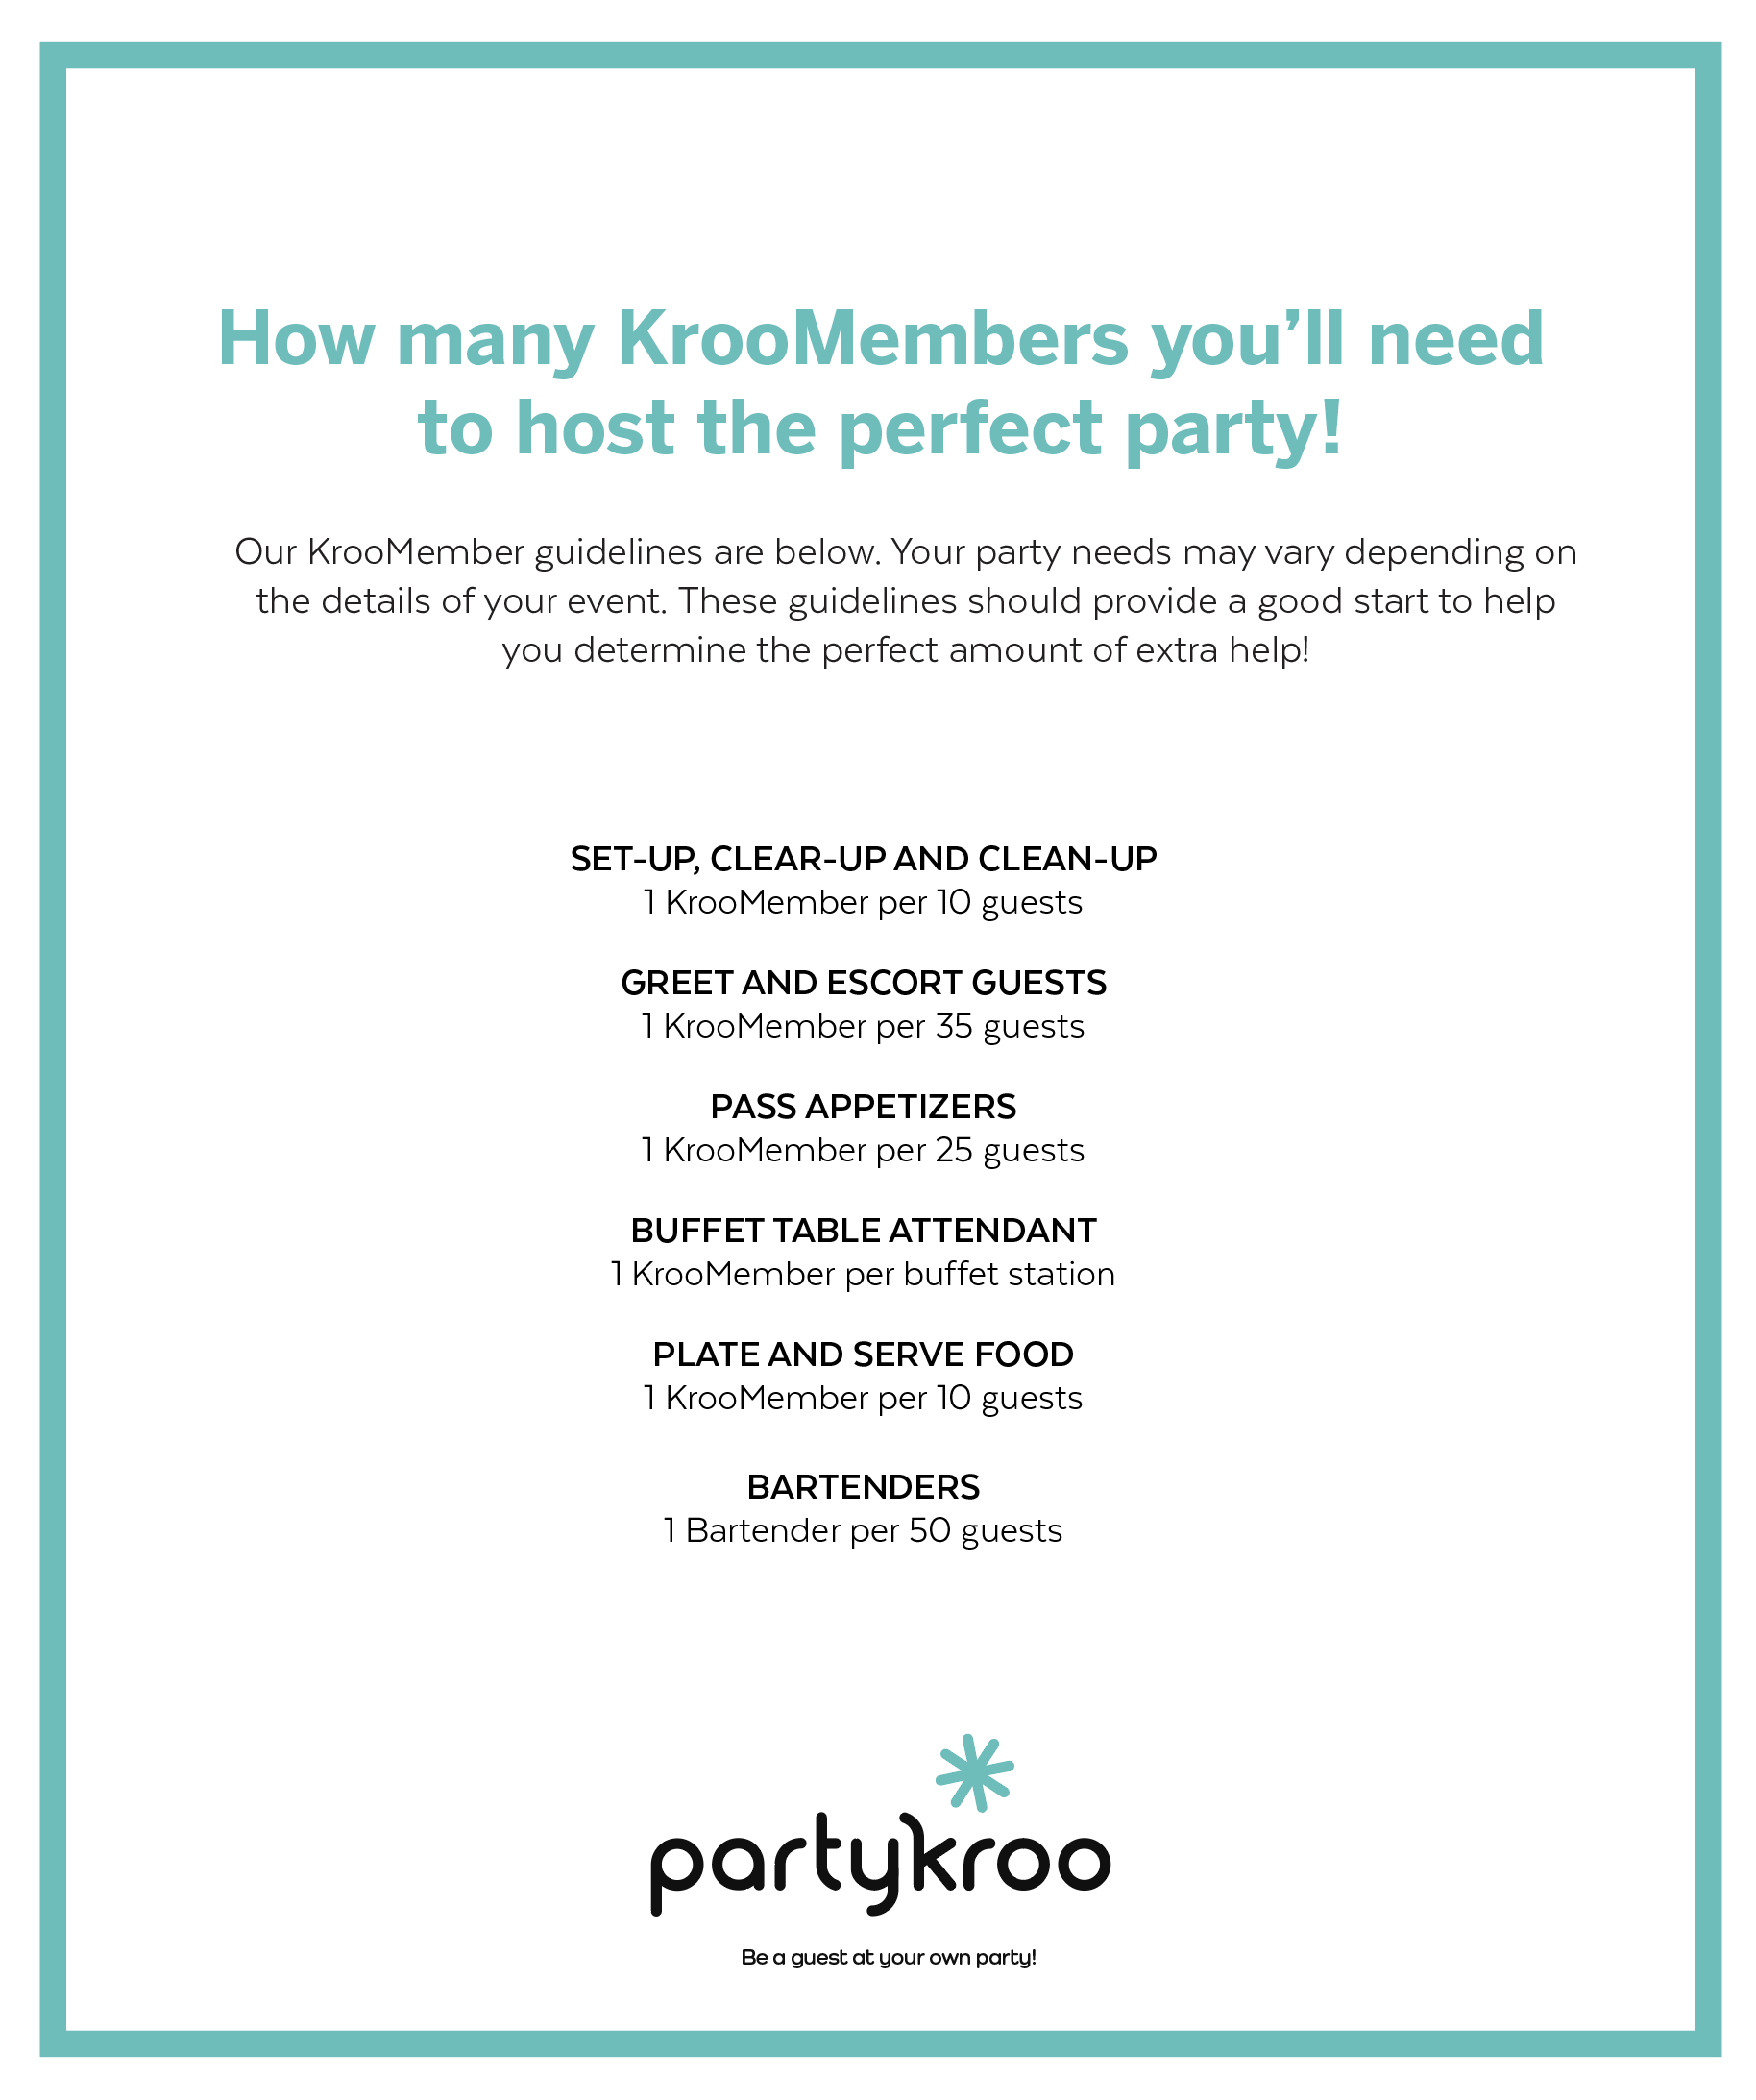 Party Staff Guide Partykroo